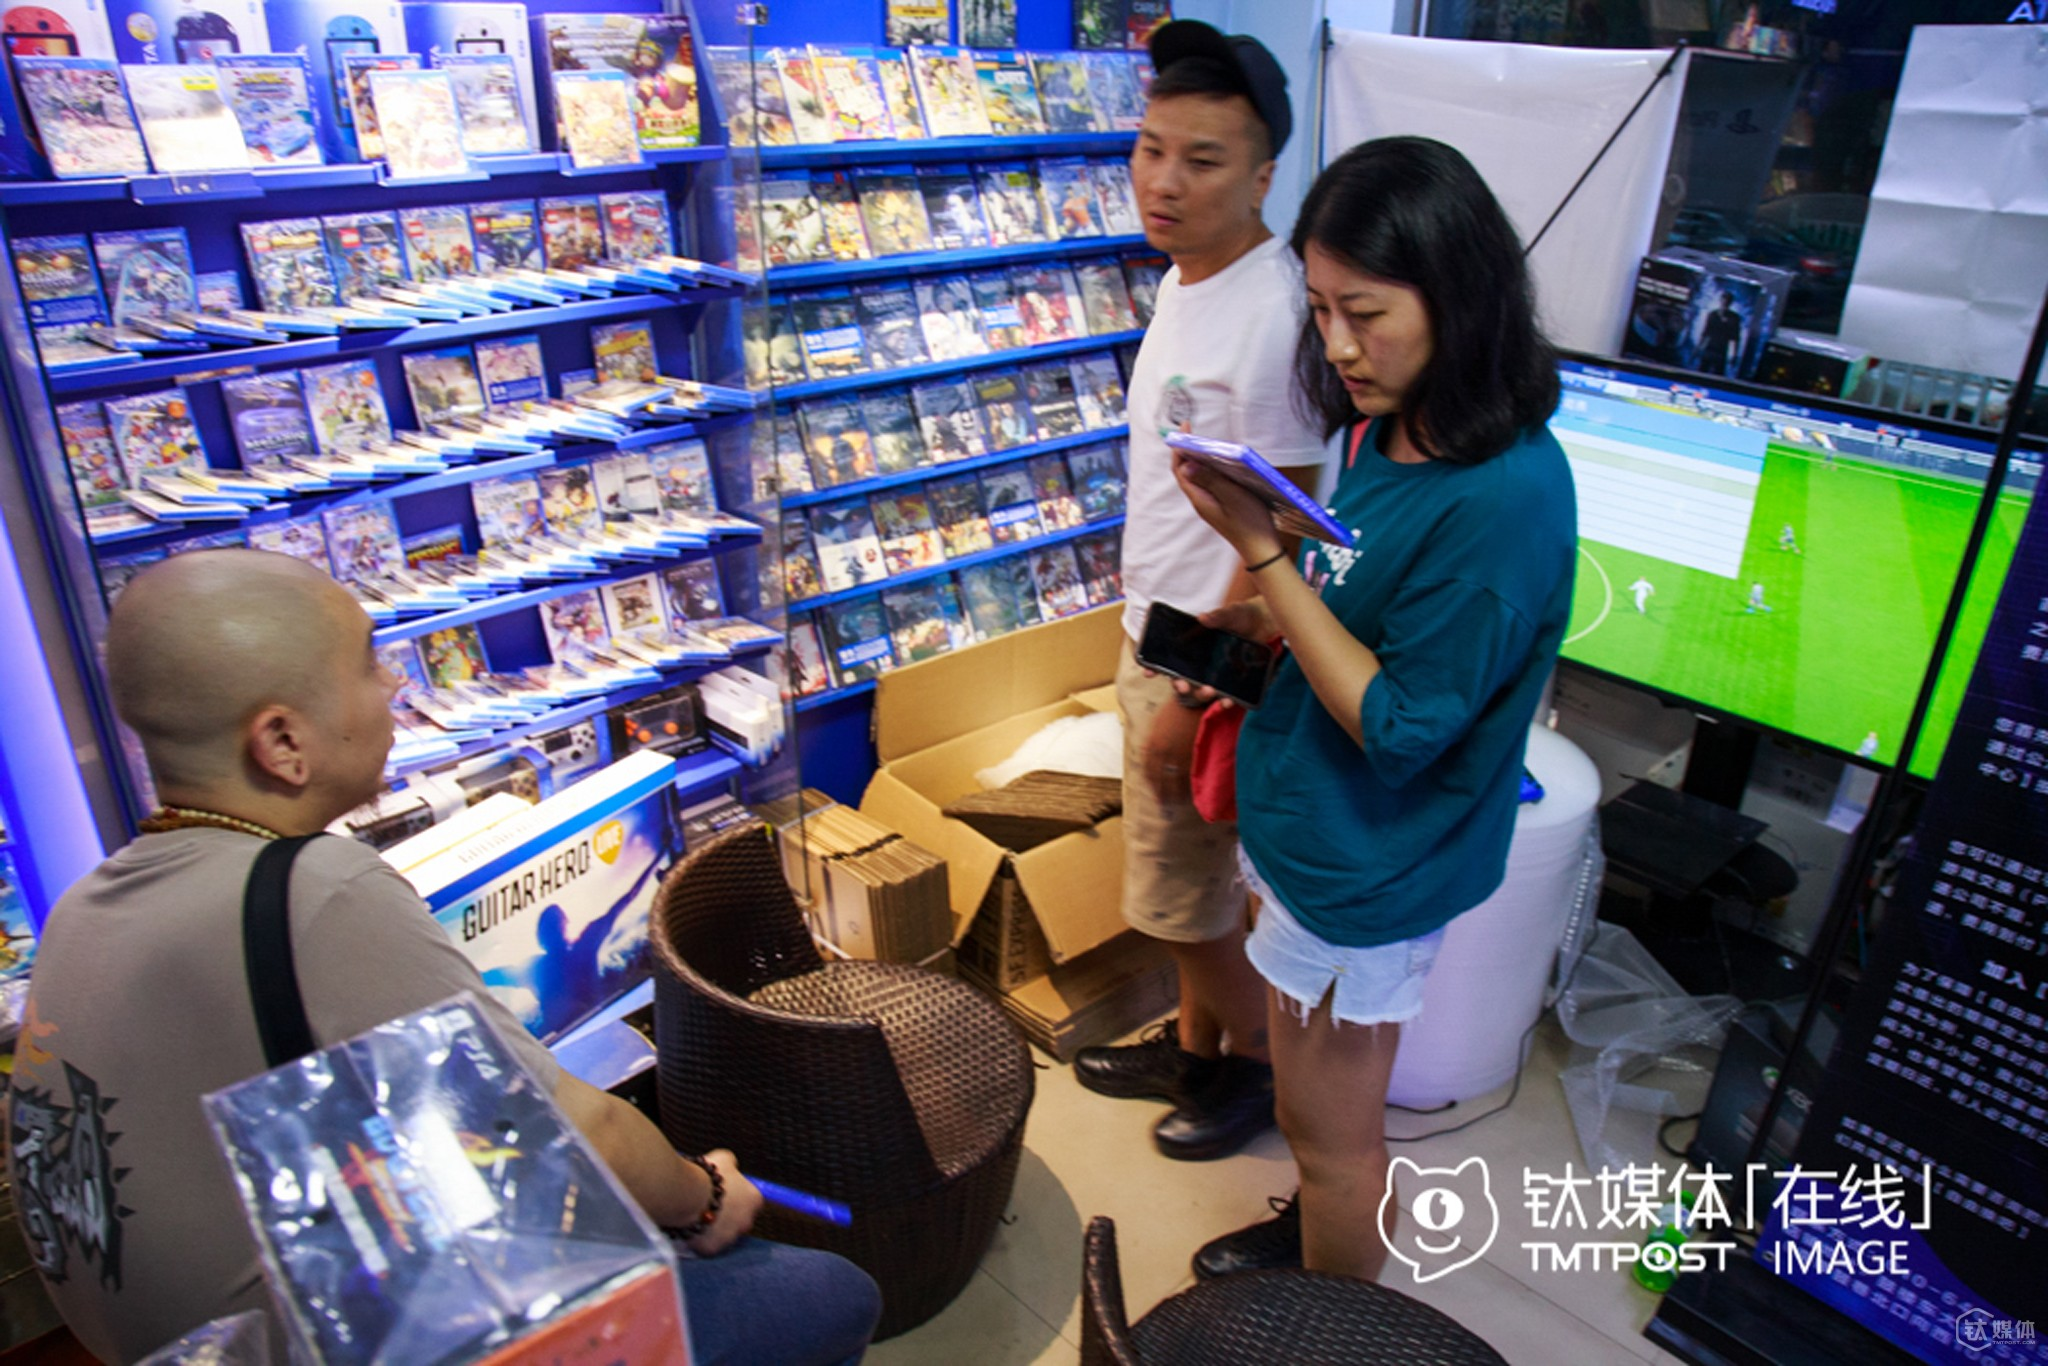 Several new video game stores were opened on Gulou Street, and most customers were regulars who were born in the 70s or 80s. Most products in these stores were directly imported from abroad, and the average price of each game CD was priced at around RMB 300.